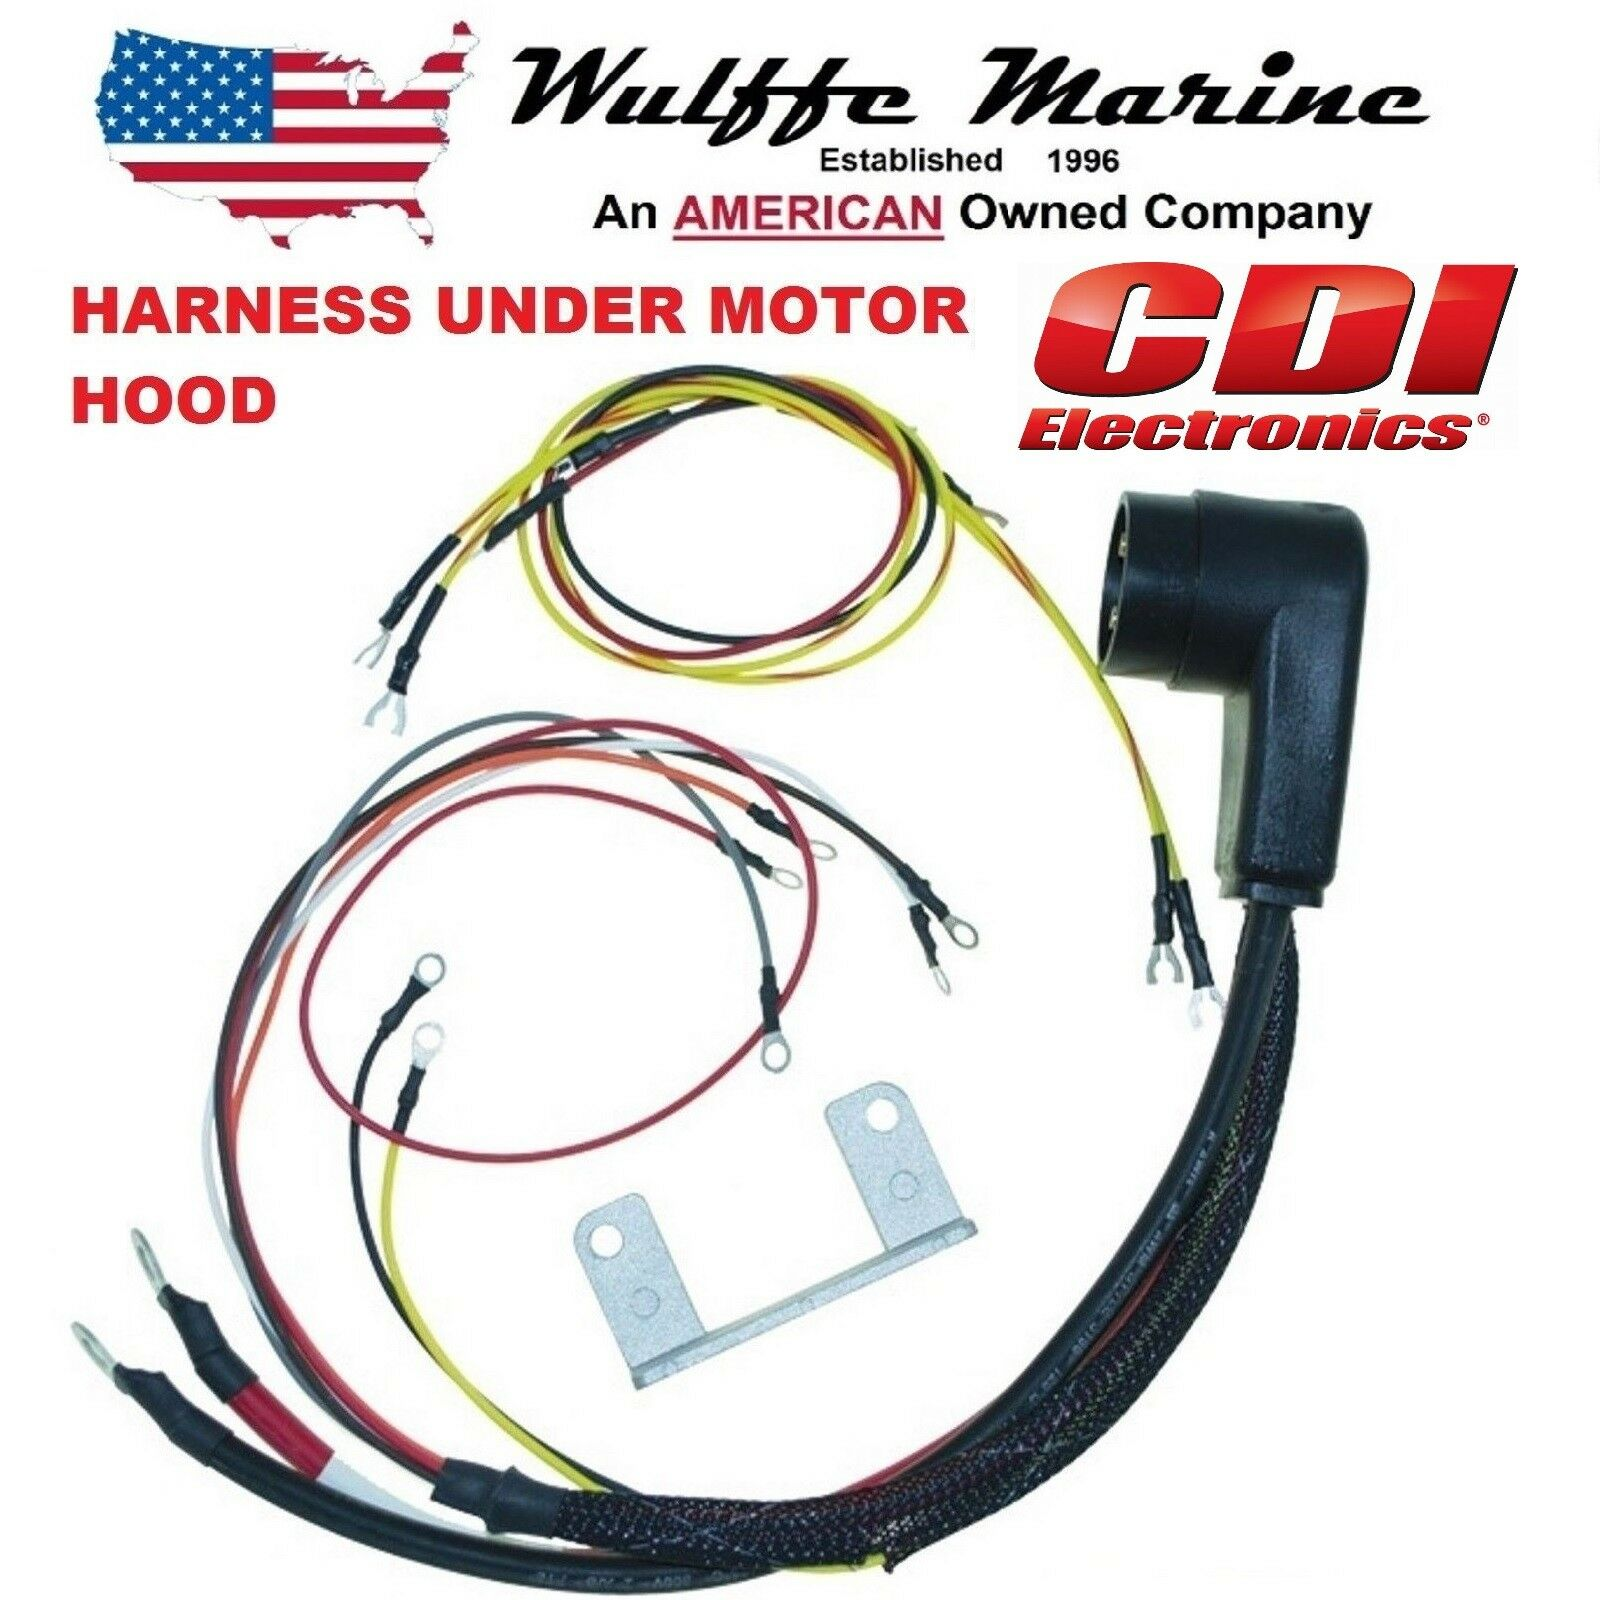 Internal Engine Wire Harness for Mercury OUTBOARD 20-140 HP CDI 414-5532 on boat motor wiring, trim tab switch wiring, 24 volt trolling motor wiring, jon boat wiring,